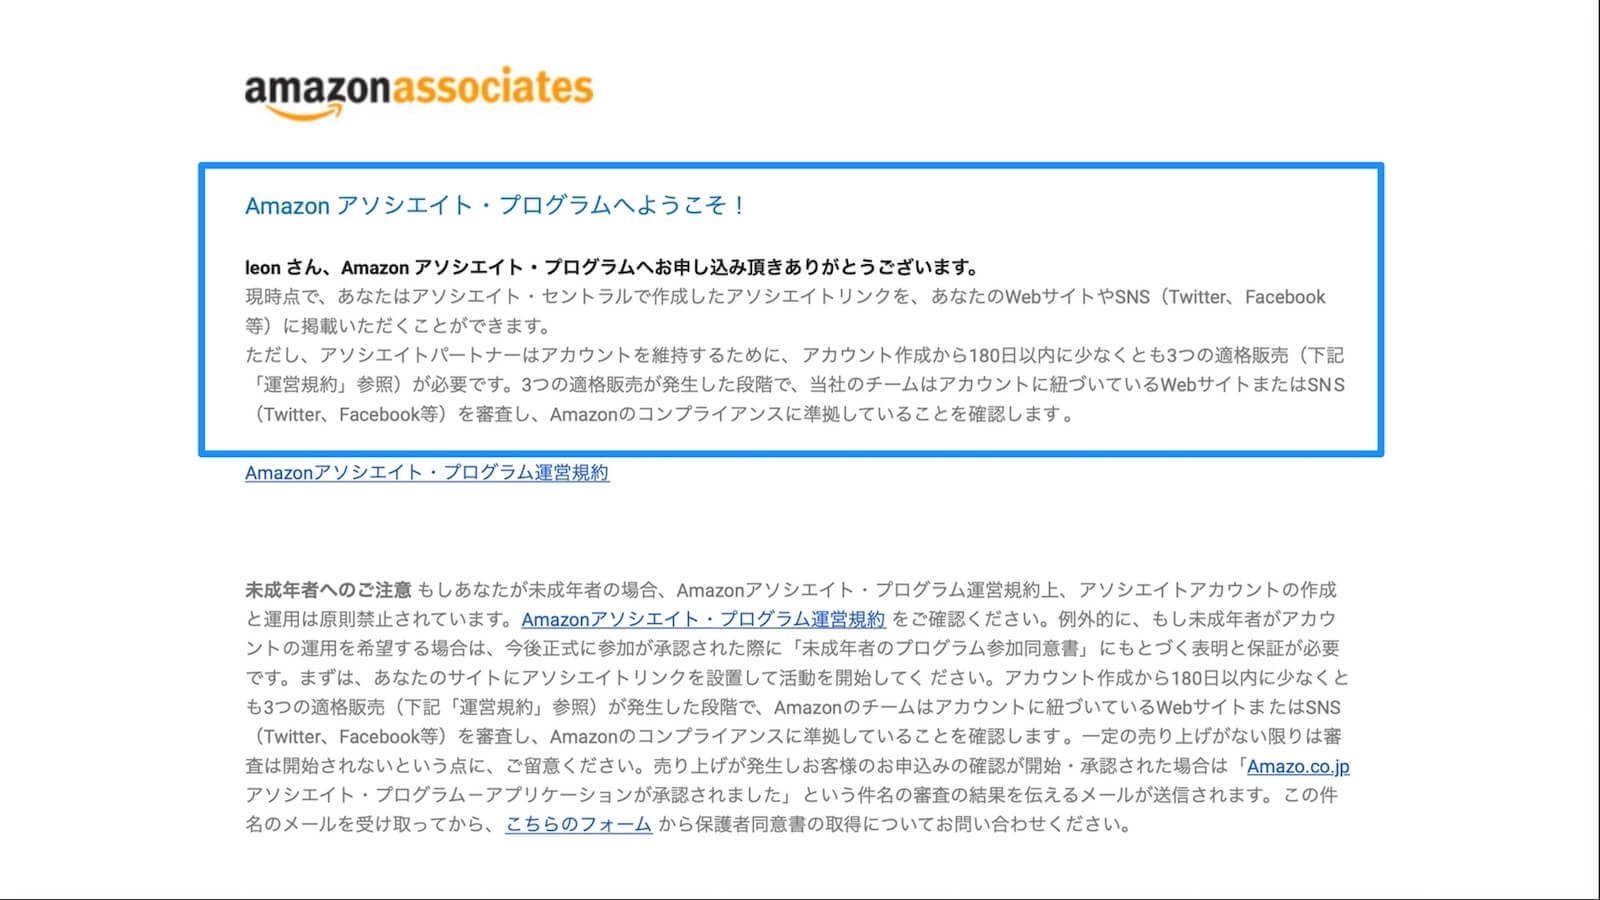 Capture address after registering for Amazon Associate account application